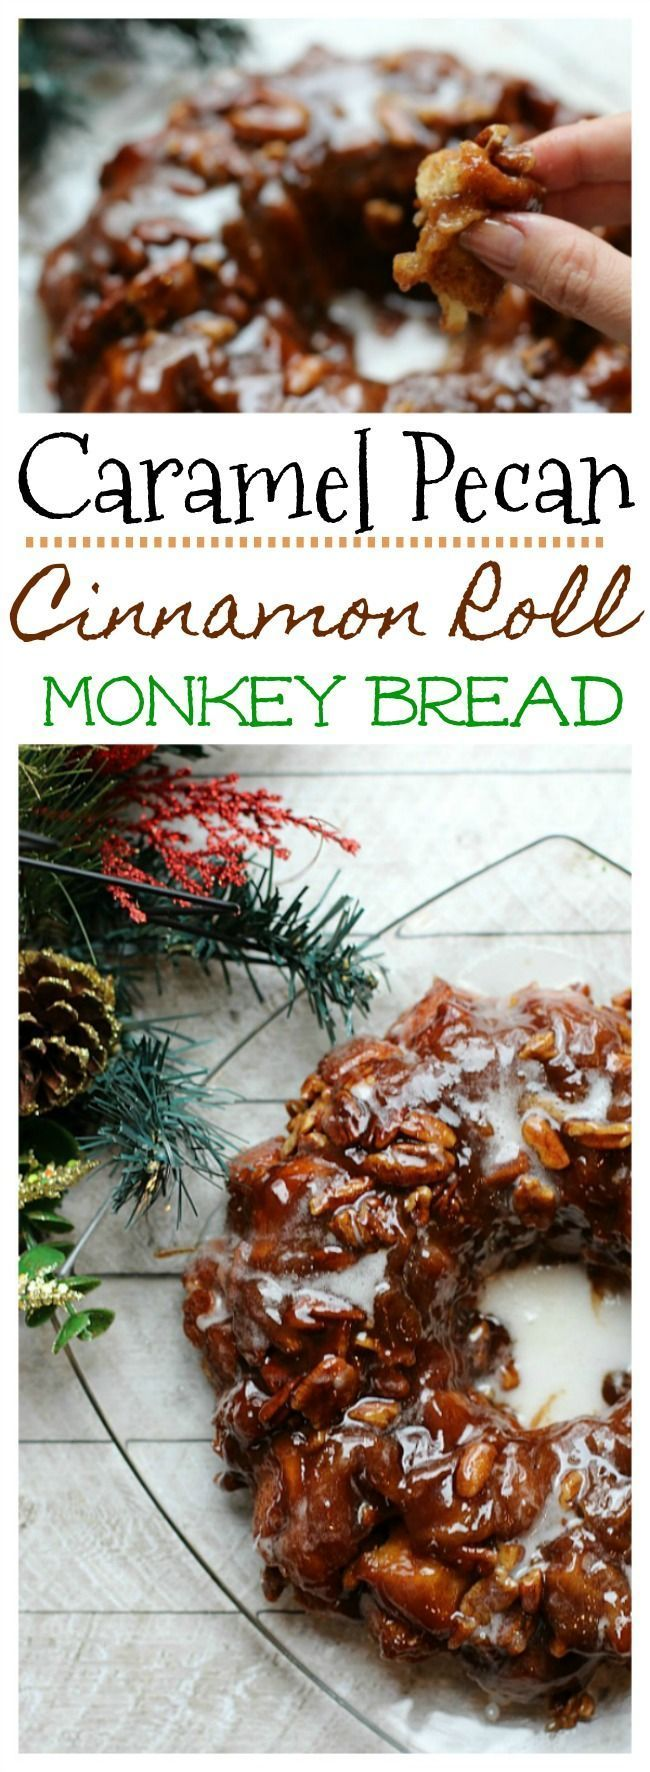 Start a new holiday tradition with our easy-to-make Caramel Pecan Cinnamon Roll Monkey Bread made with ingredients from #SamsClub! Get the recipe today! #ad #SavortheSeason #ItsBakingSeason #BakeEatCelebrate